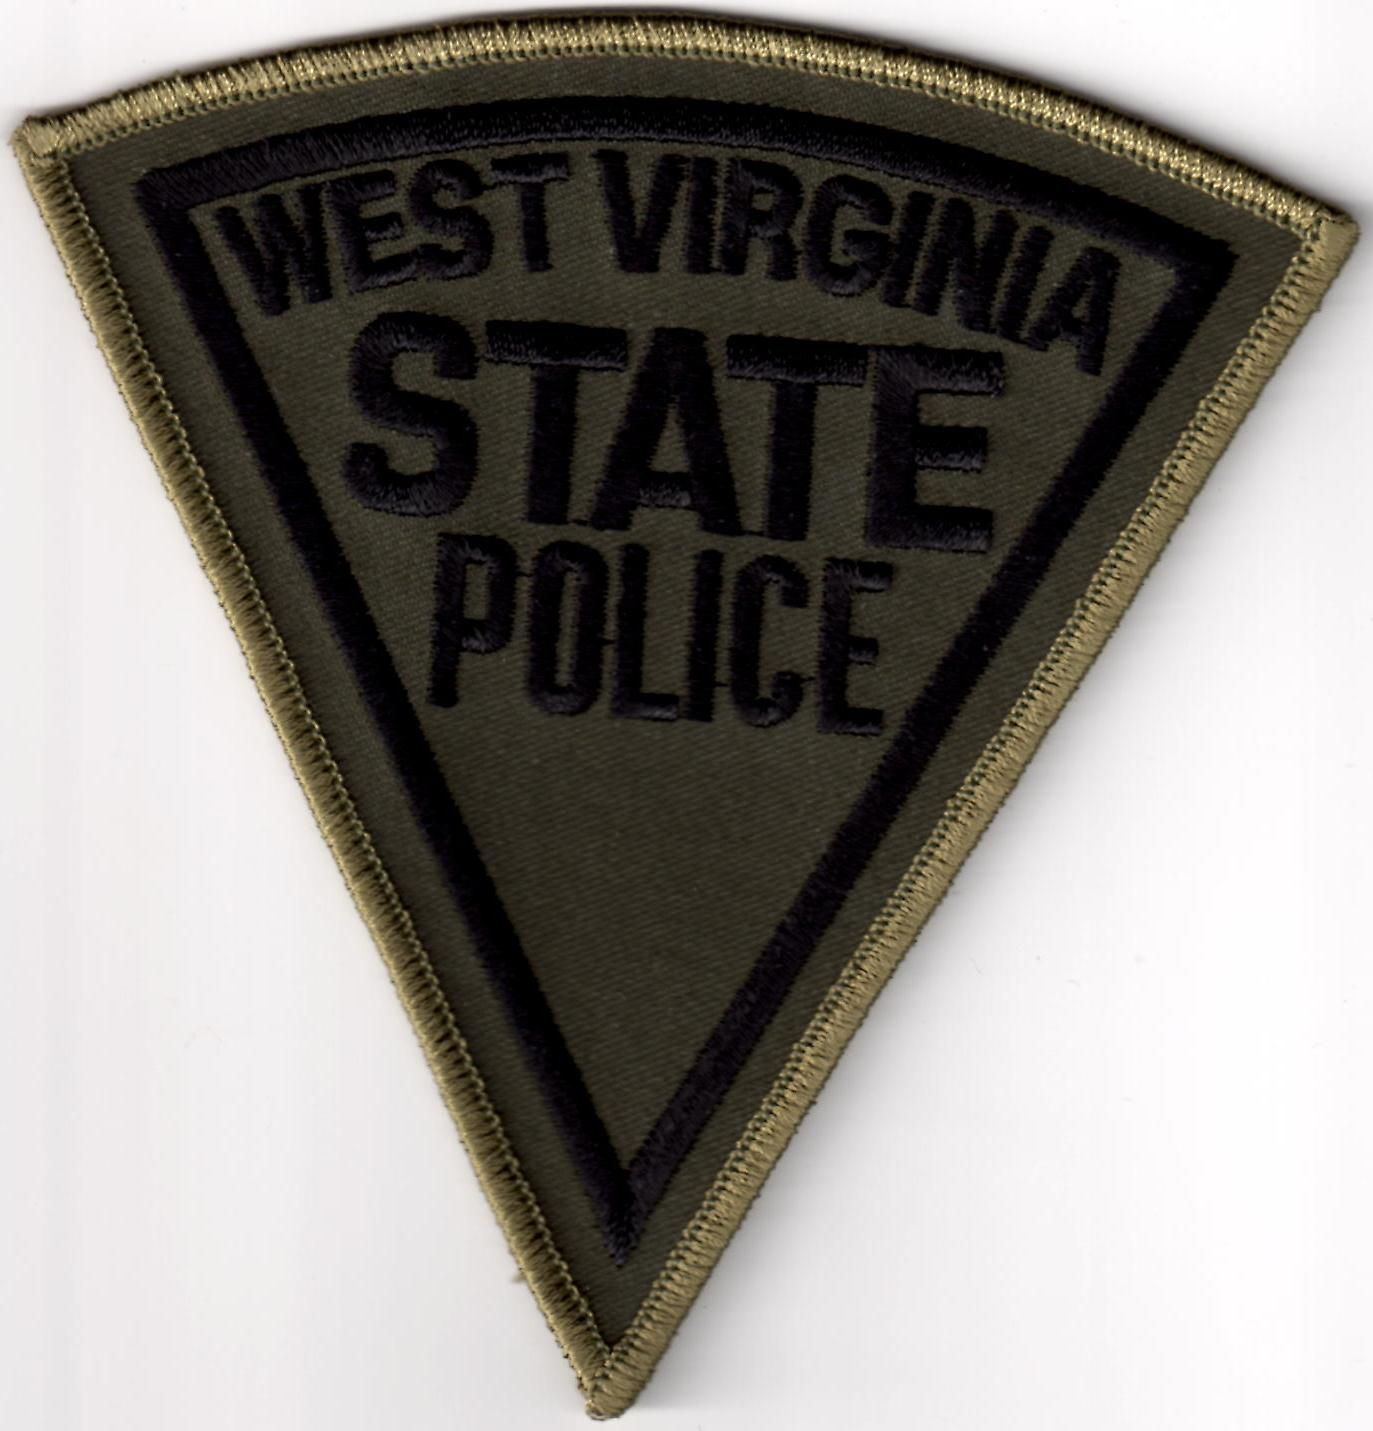 Nothing Found For Collection Group Php Showgroup 39 Nothidden 1 State Police Police State Trooper